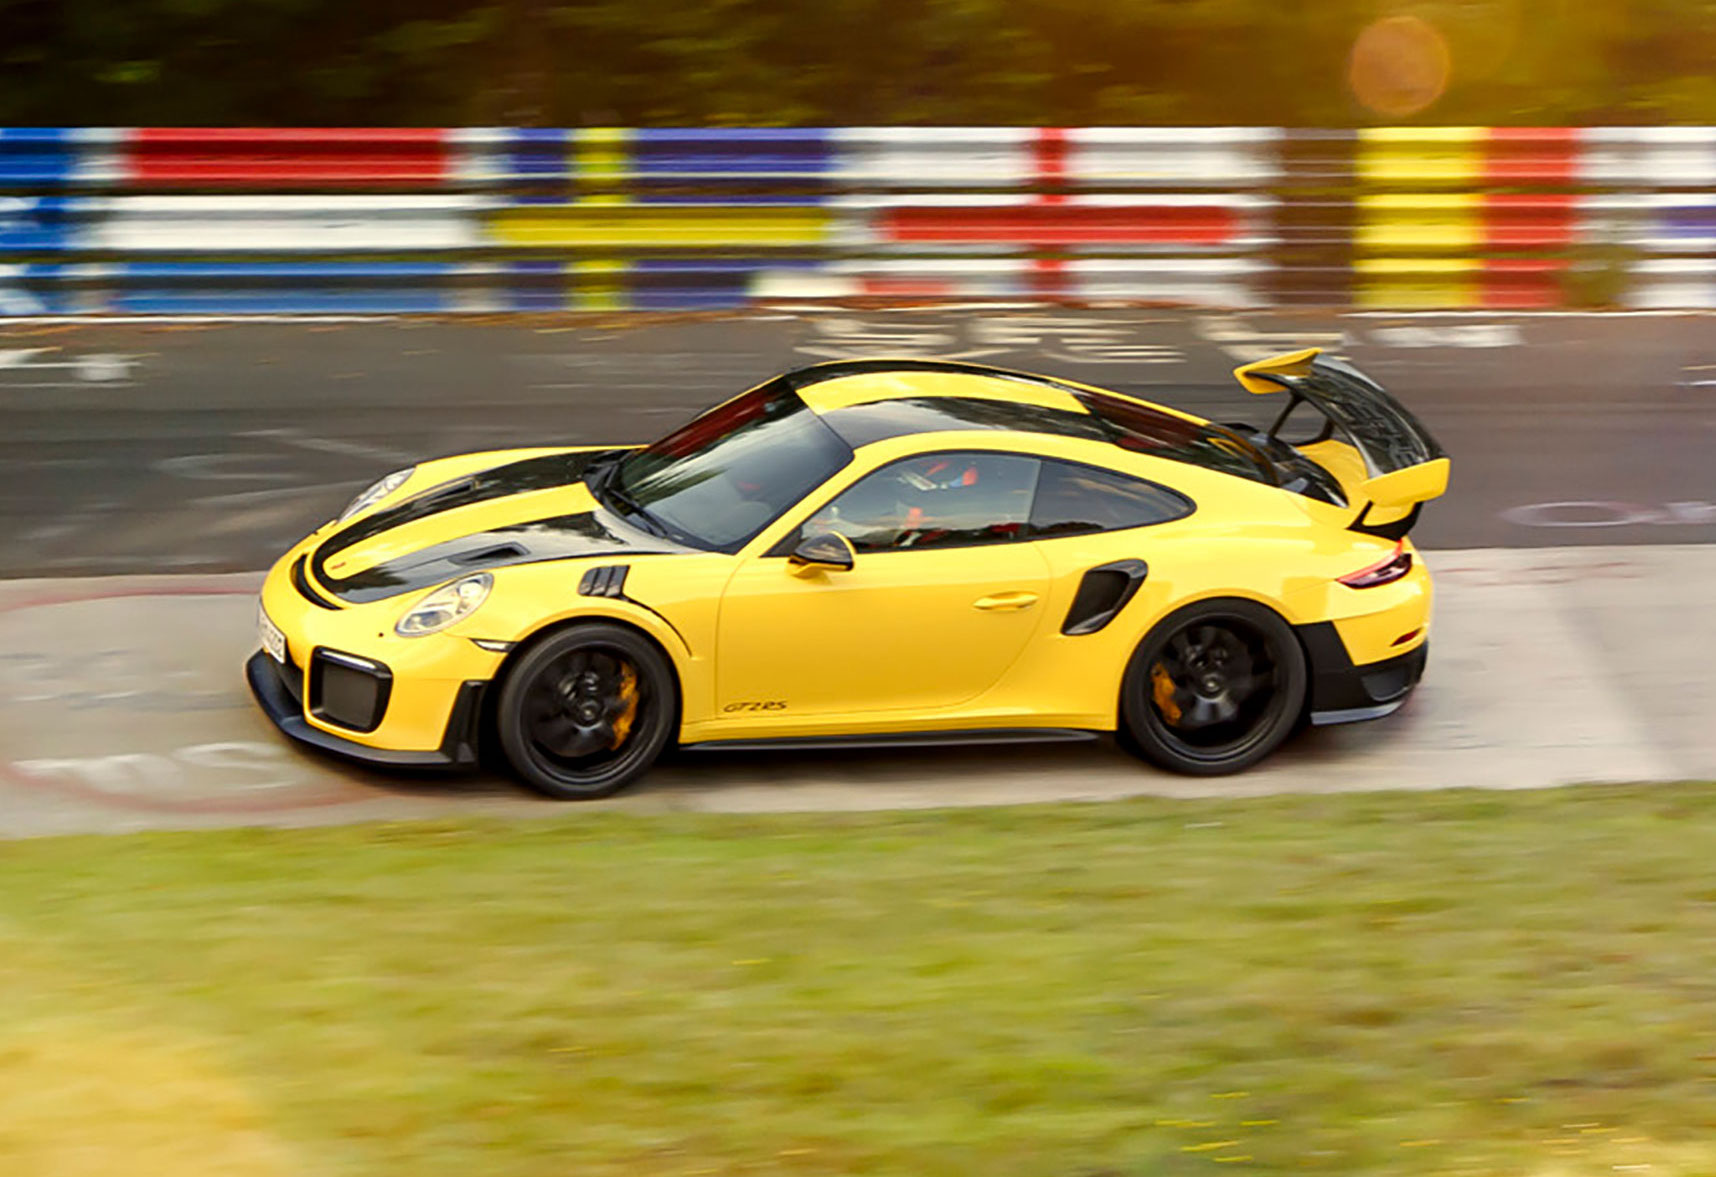 2018-porsche-911-gt2-rs-nurburgring-lap-record-6 Breathtaking How Many Porsche 911 Gt2 Were Made Cars Trend